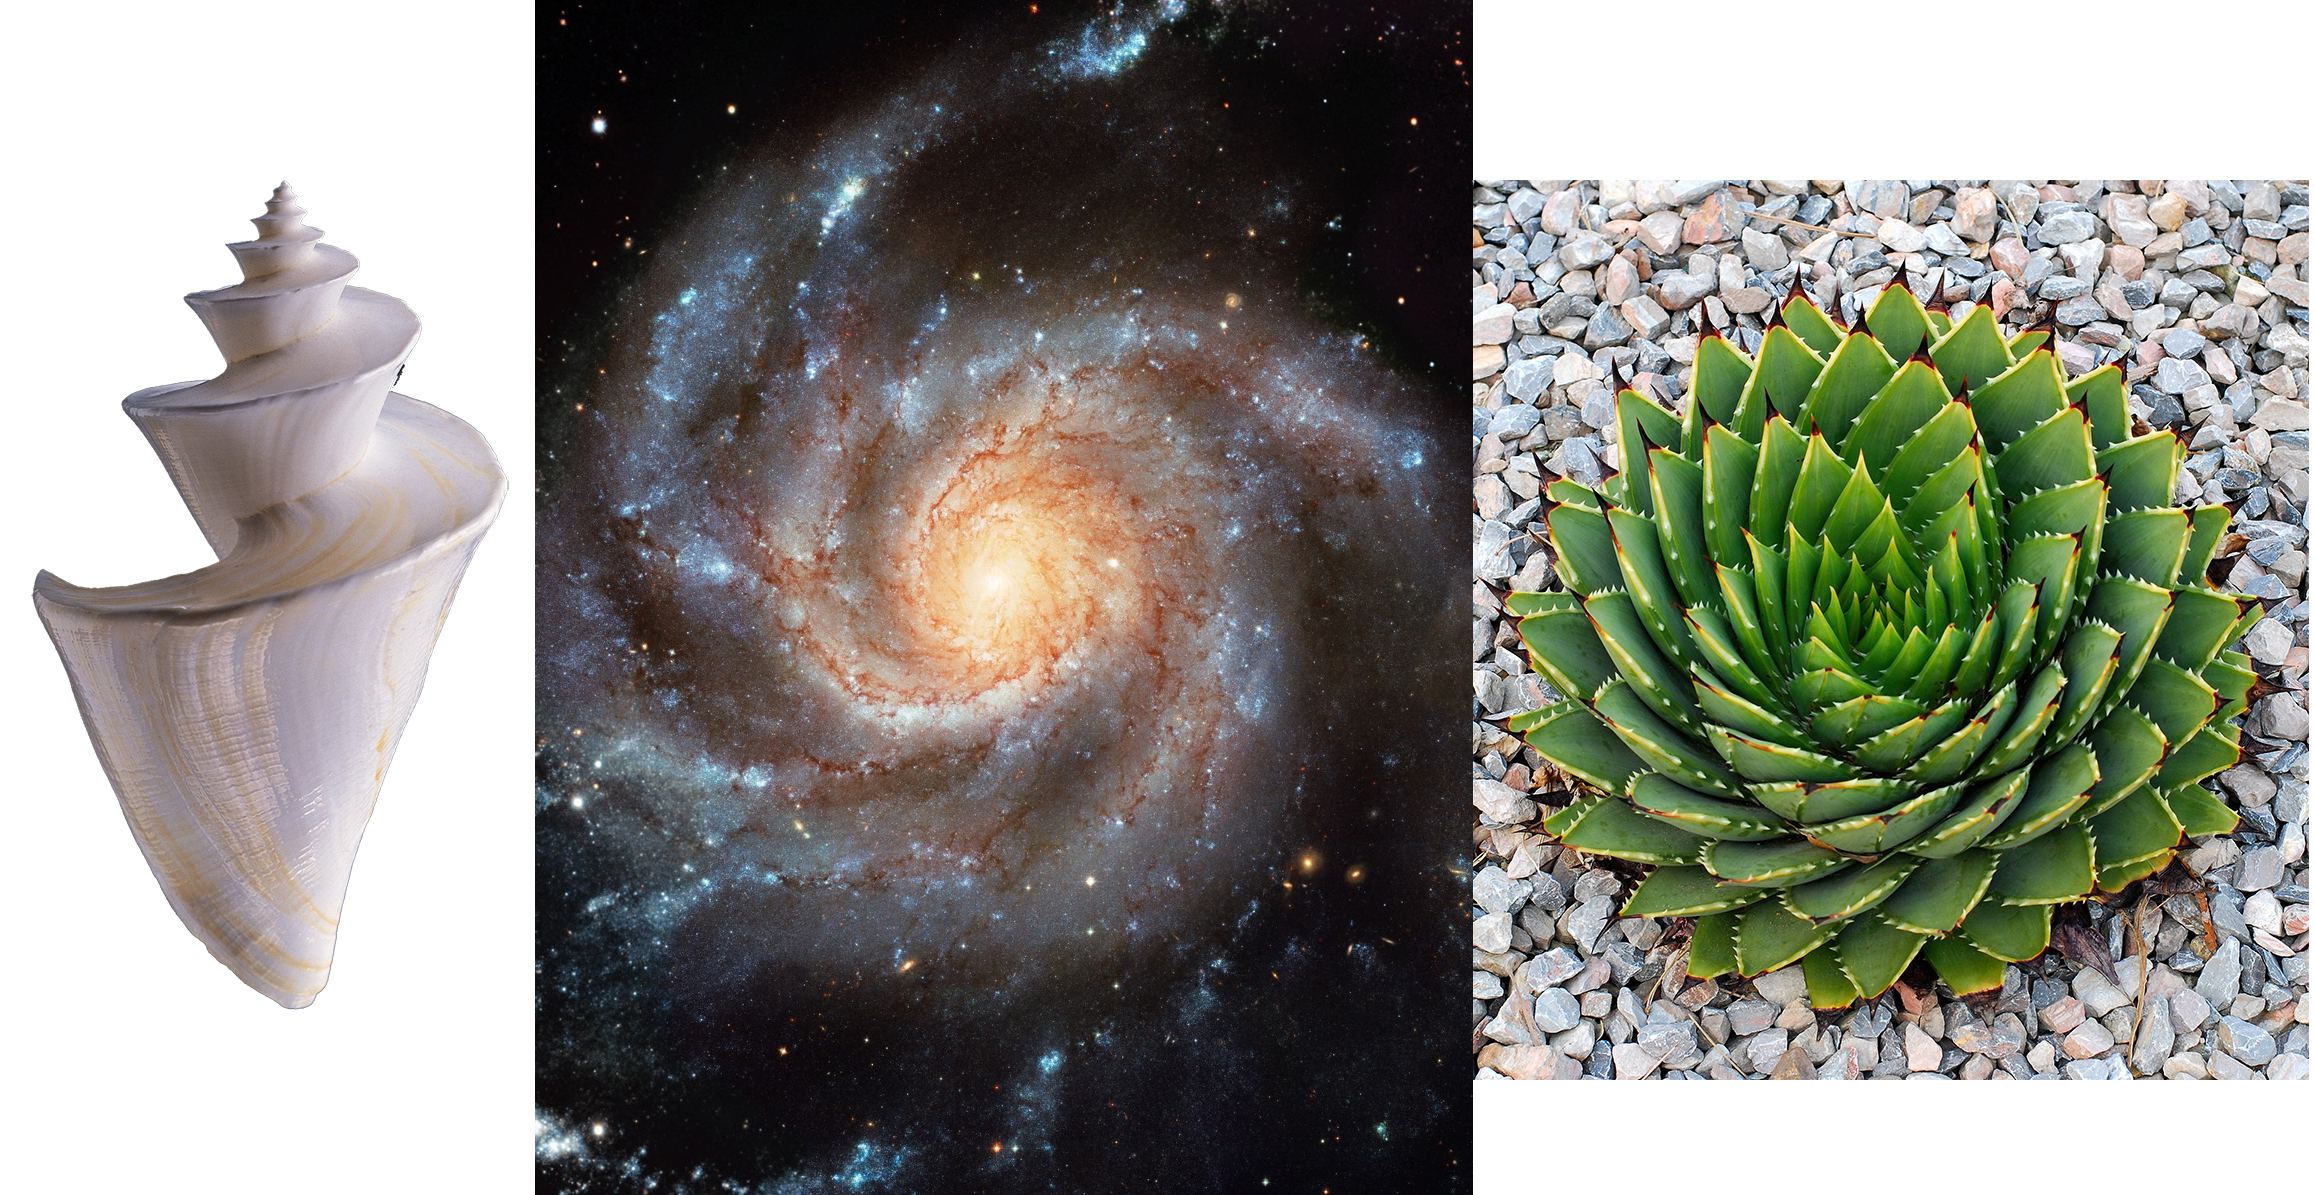 Spirals in nature, and the cosmos